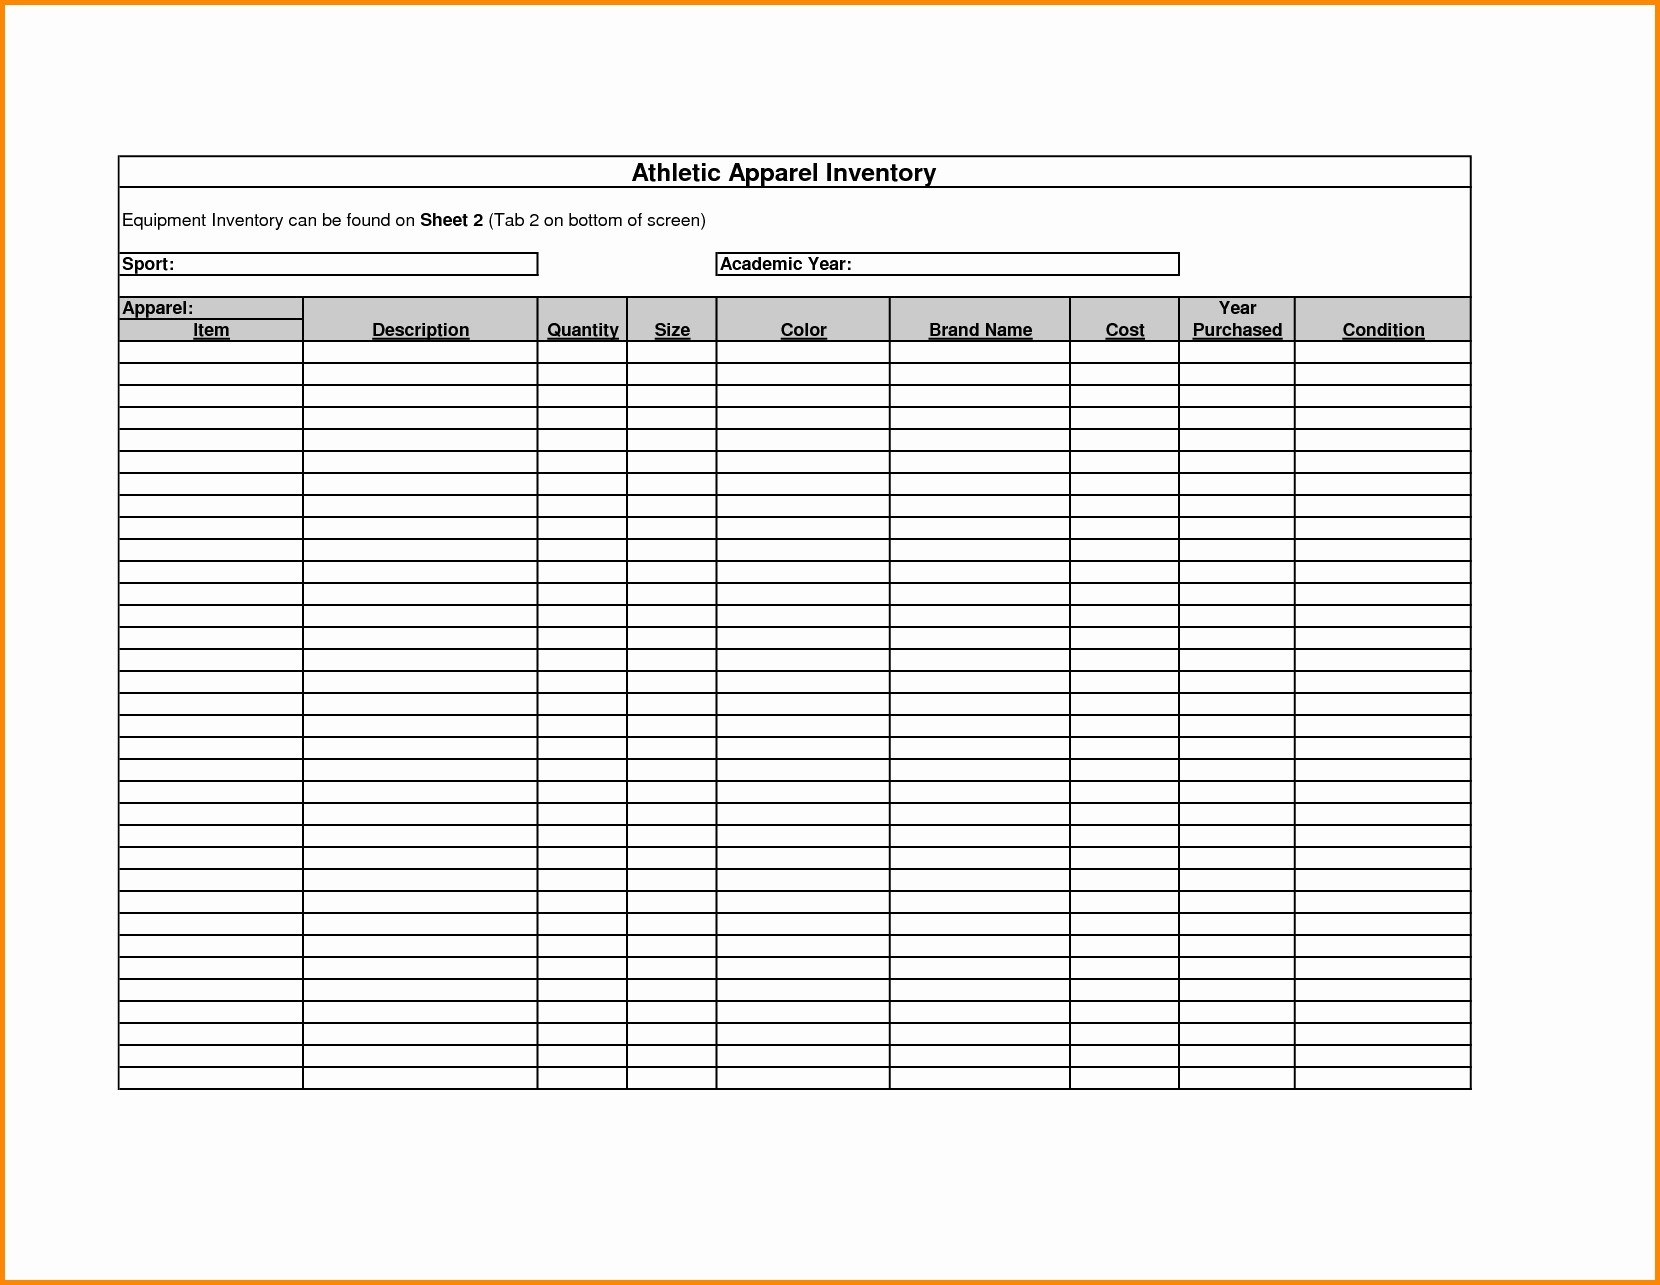 Excel Spreadsheet Templates for Inventory Elegant Basiccontrol Free Excel Inventory Templatesl Business